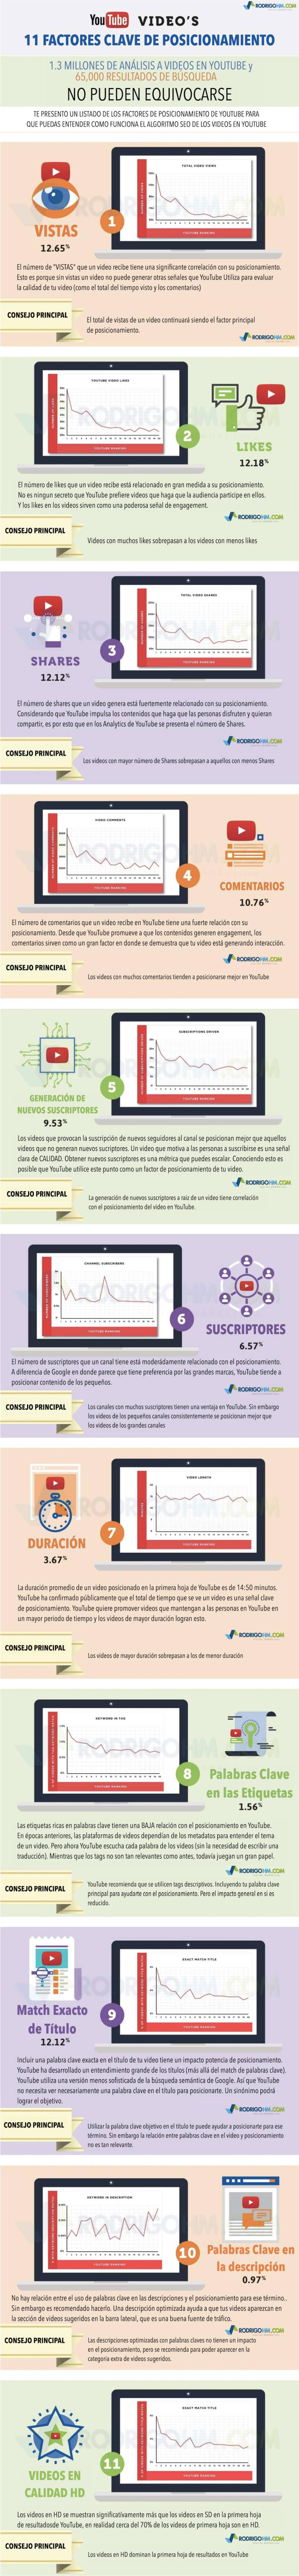 Cómo posicionarse en YouTube (YouTube SEO) #infografia #seo #socialmedia #marketing